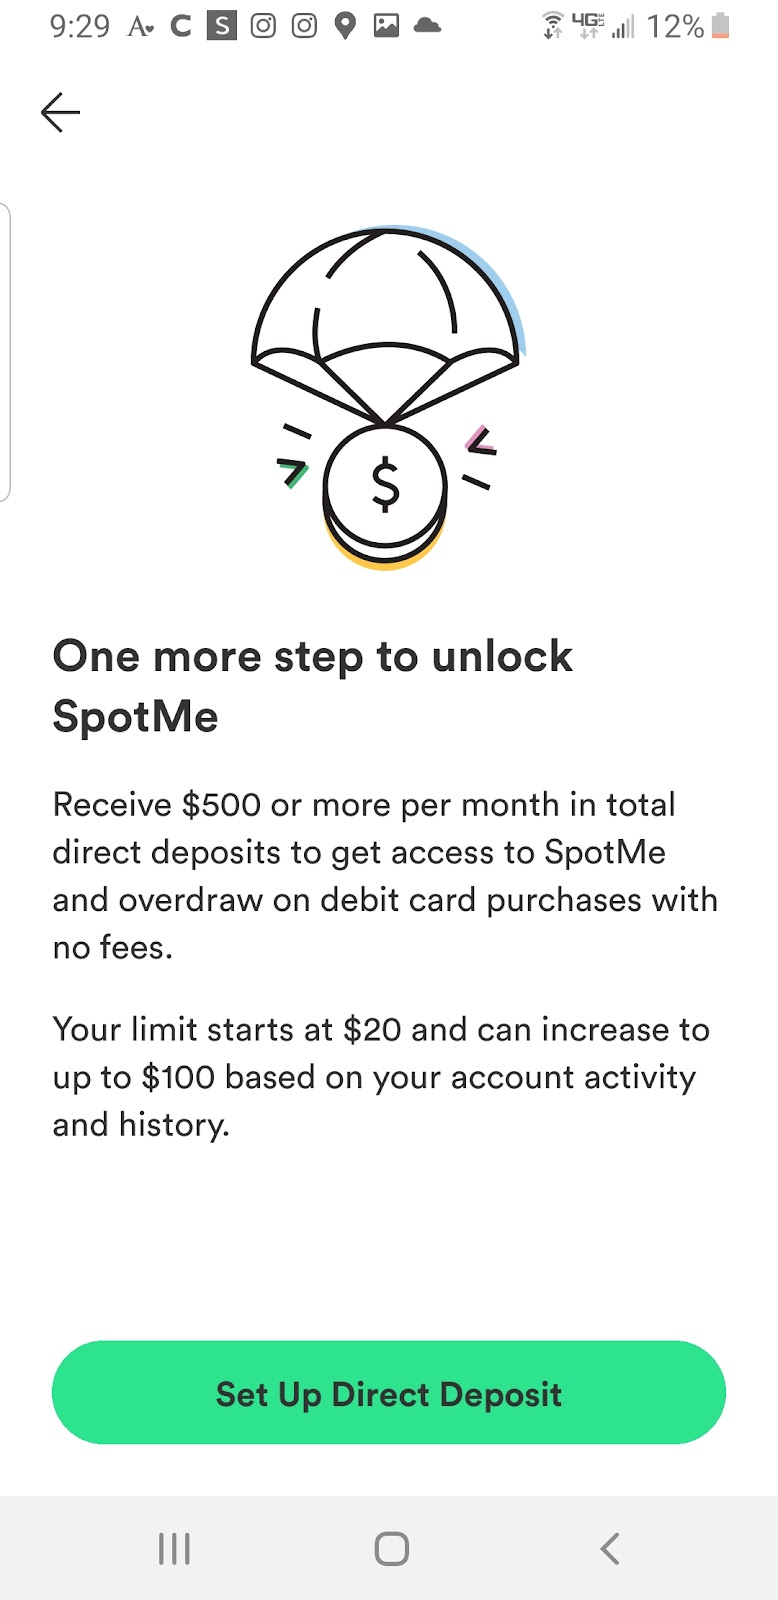 A screenshot sharing that Chime members can earn $50 for referring new members.